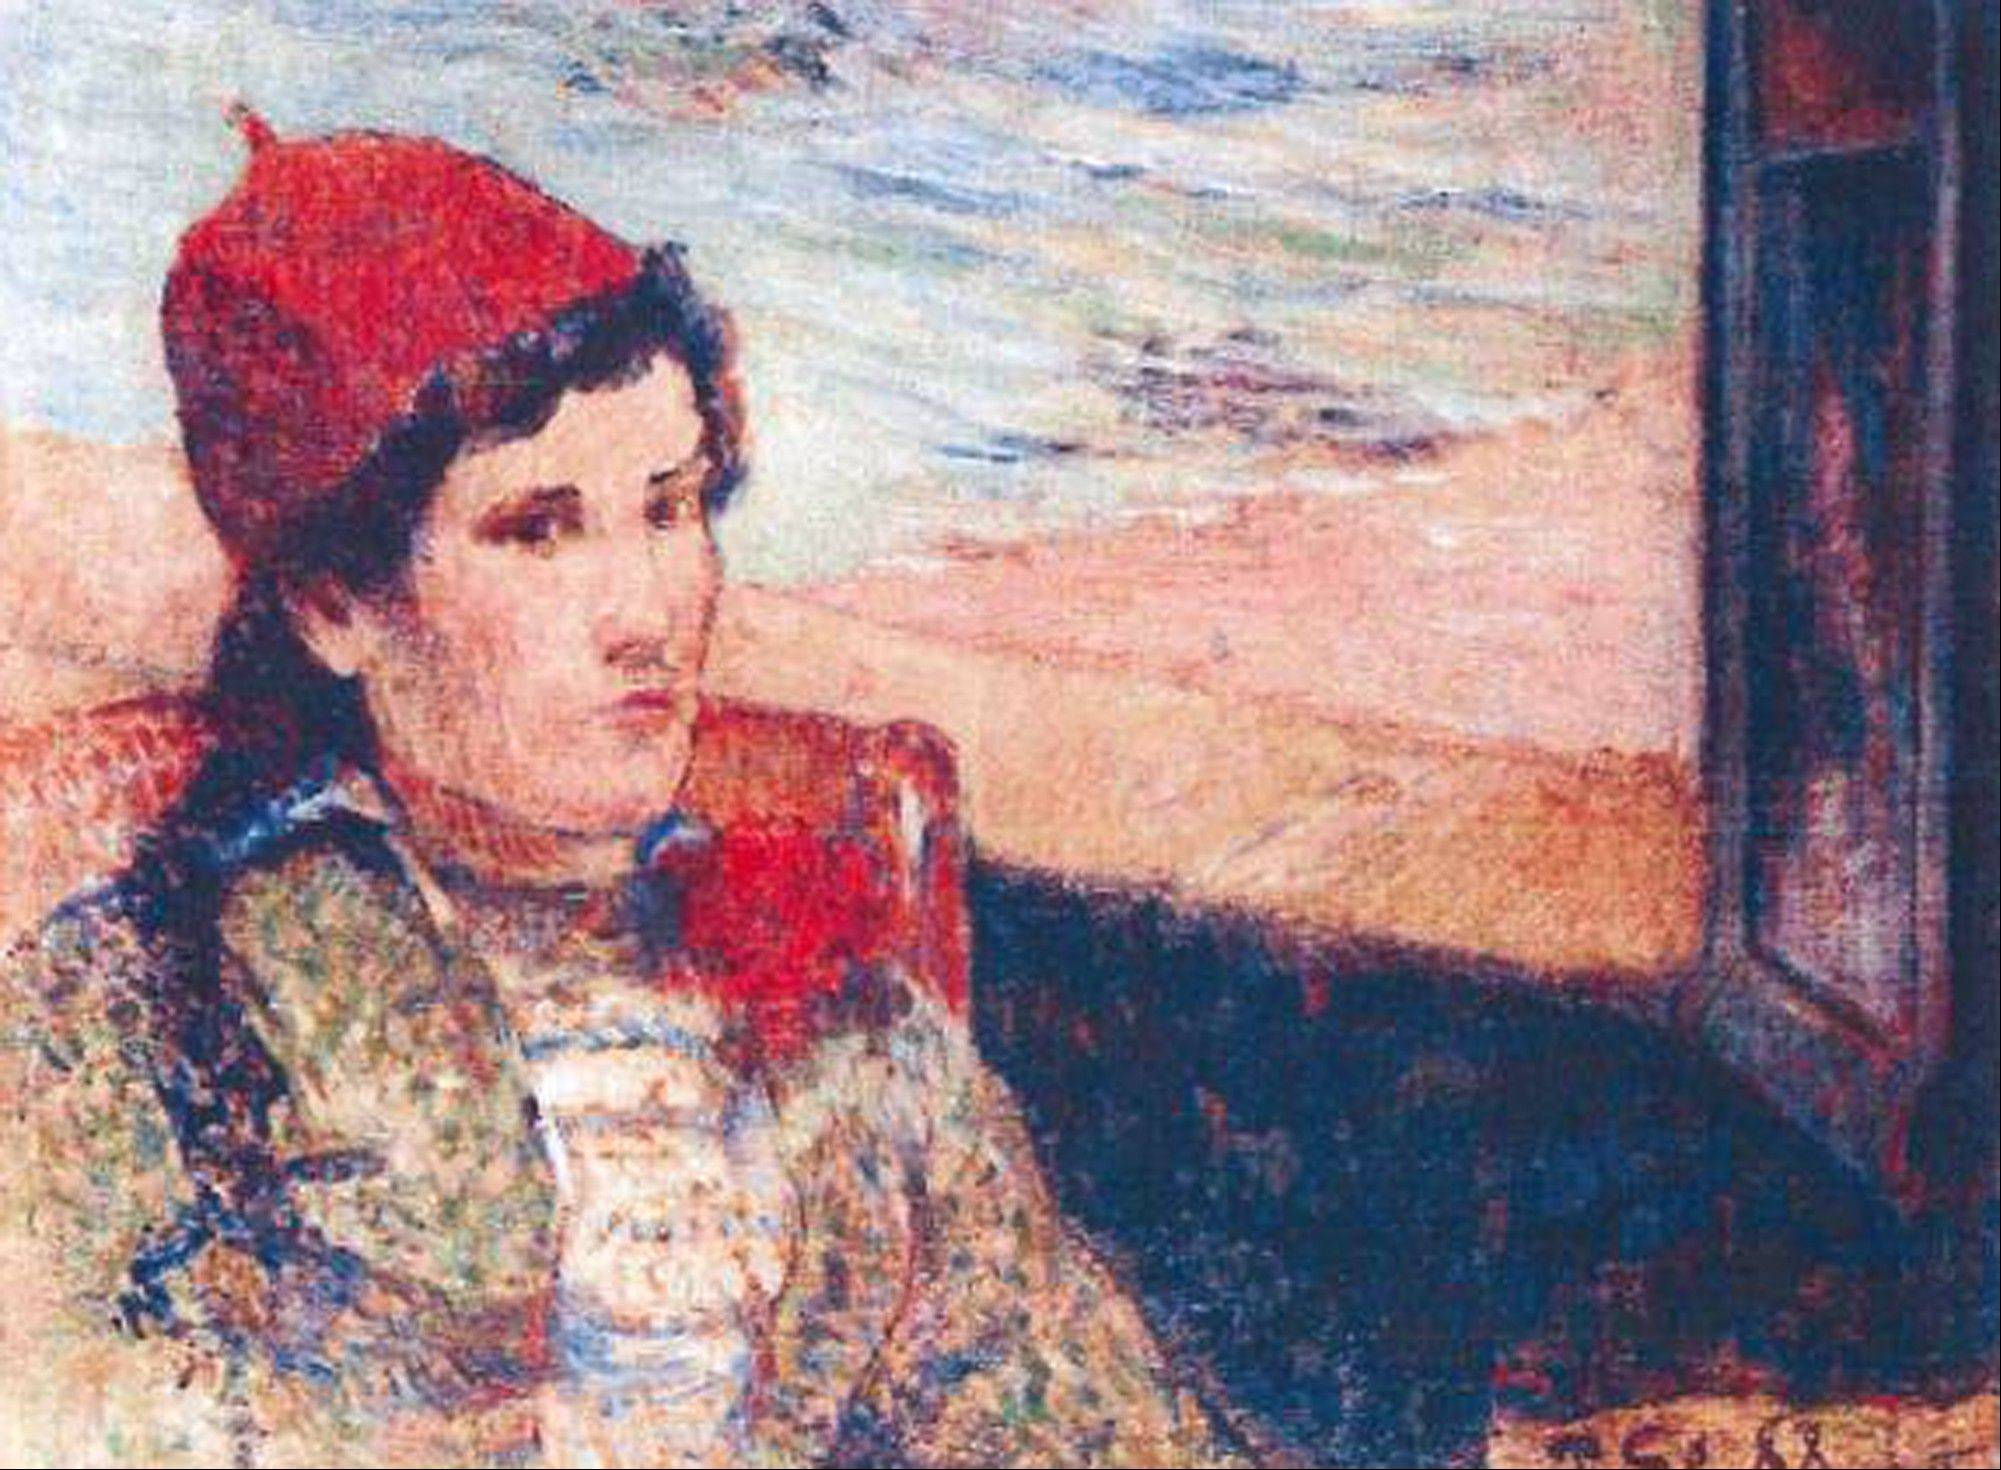 The 1898 painting �Girl in Front of Open Window� by Paul Gauguin was among seven paintings stolen from a musem in Netherlands. Works by Pablo Picasso, Henri Matisse and Claude Monet were also stolen.